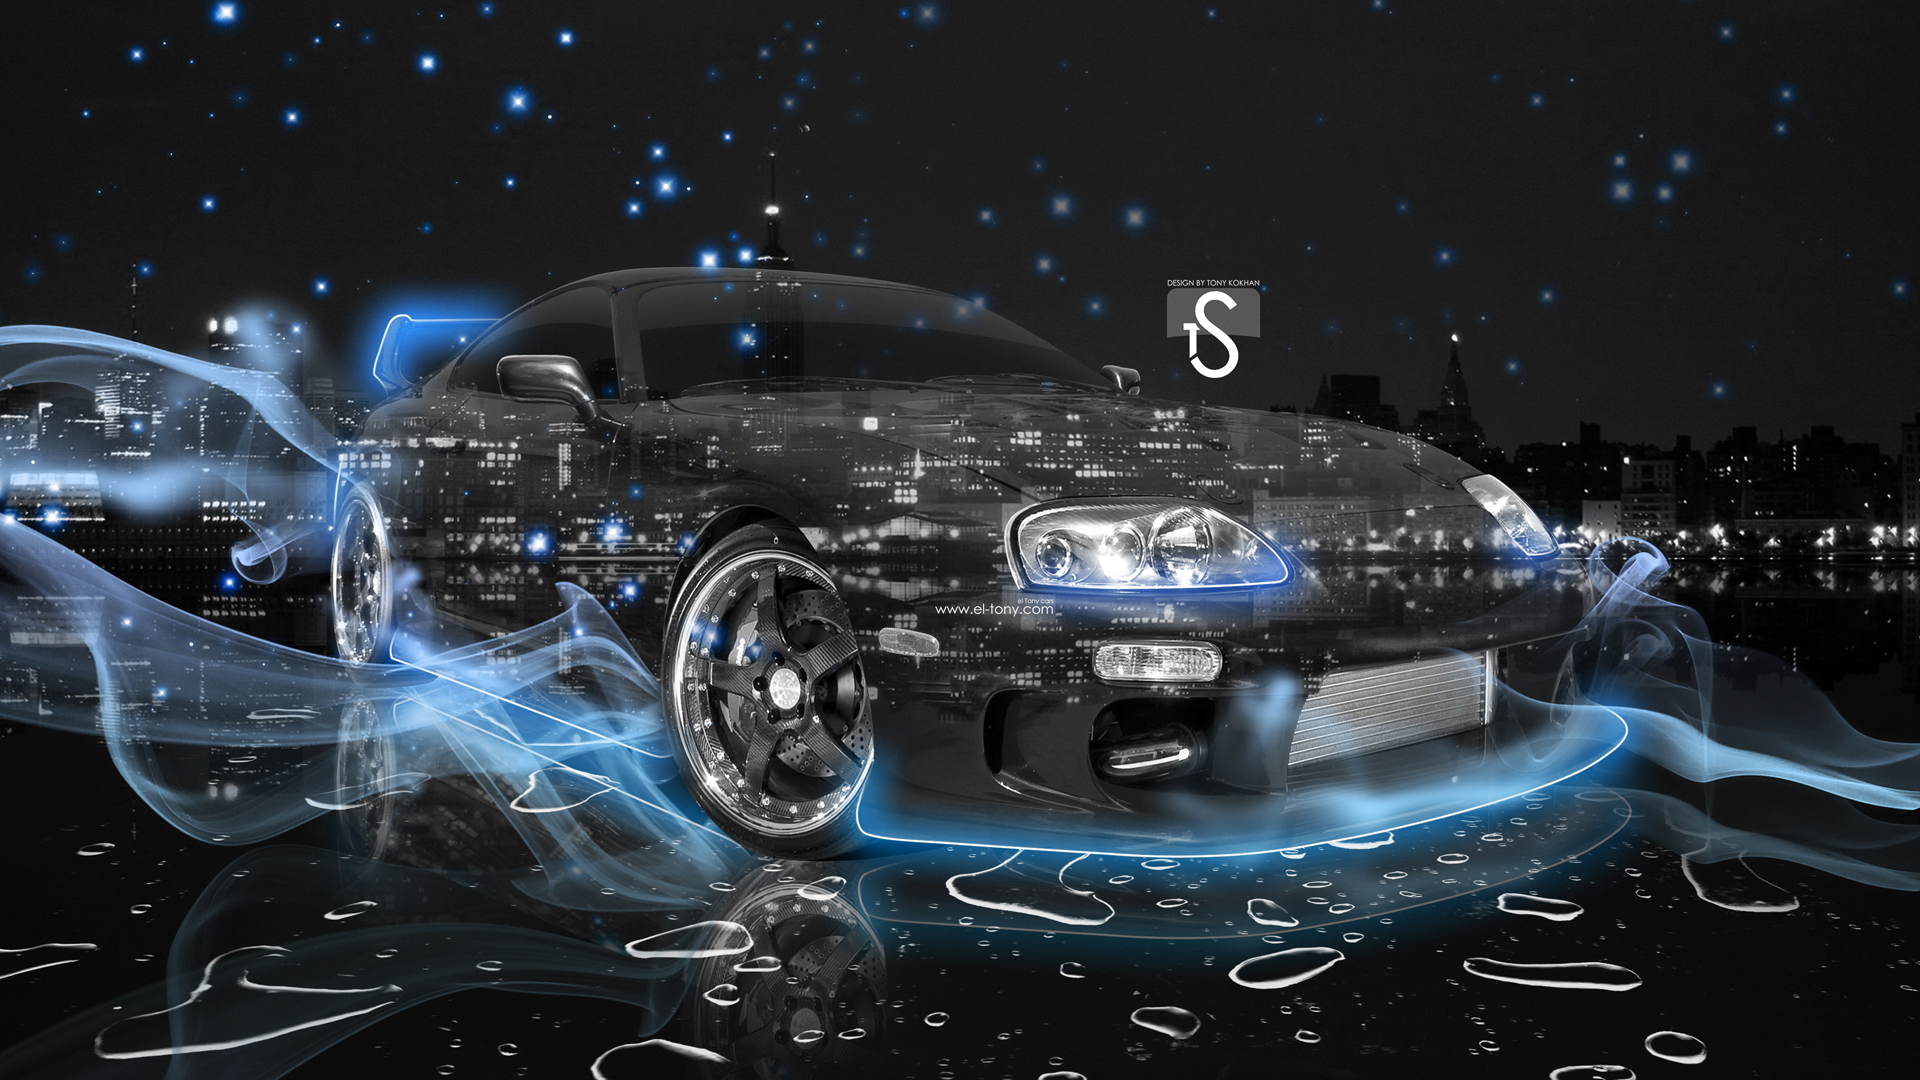 Car HD Wallpapers for Desktop iPhone iPad and Android 1920x1080